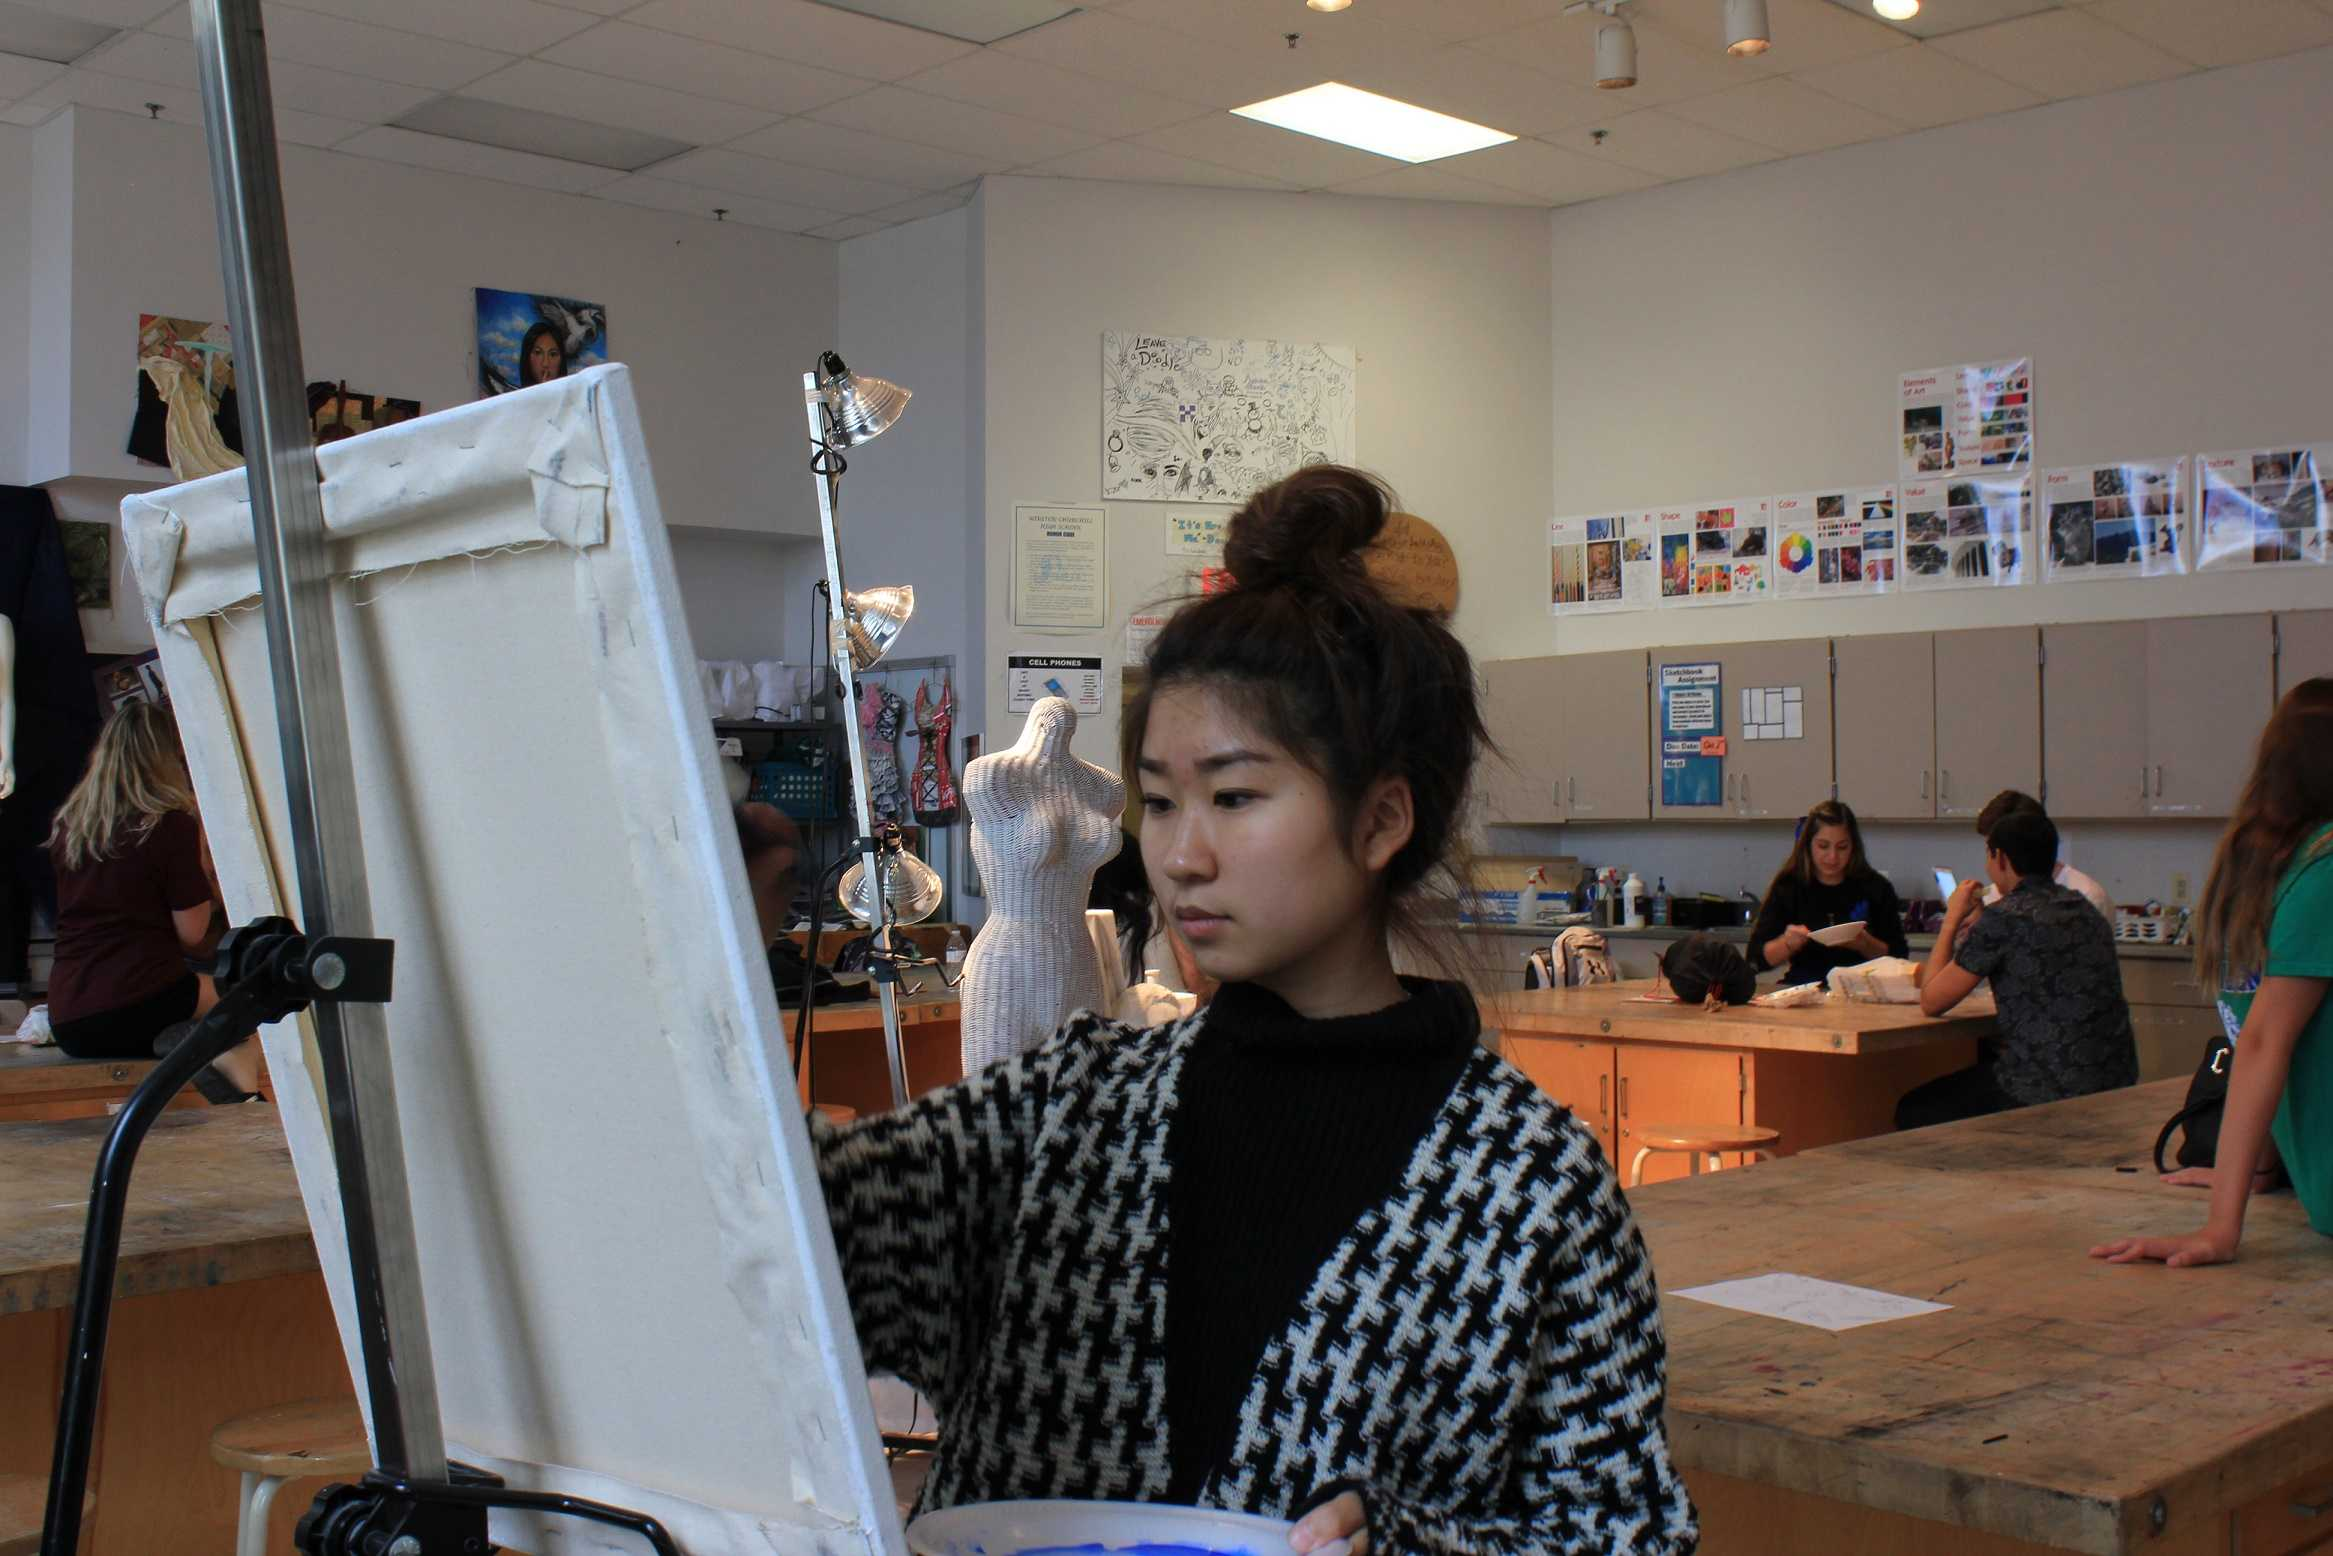 Senior Sophia Kim is a musician and avid painter whose favorite painting is of her parents. She was inducted into the National Society of Arts and Letters and has traveled to Korea to paint for the less fortunate.